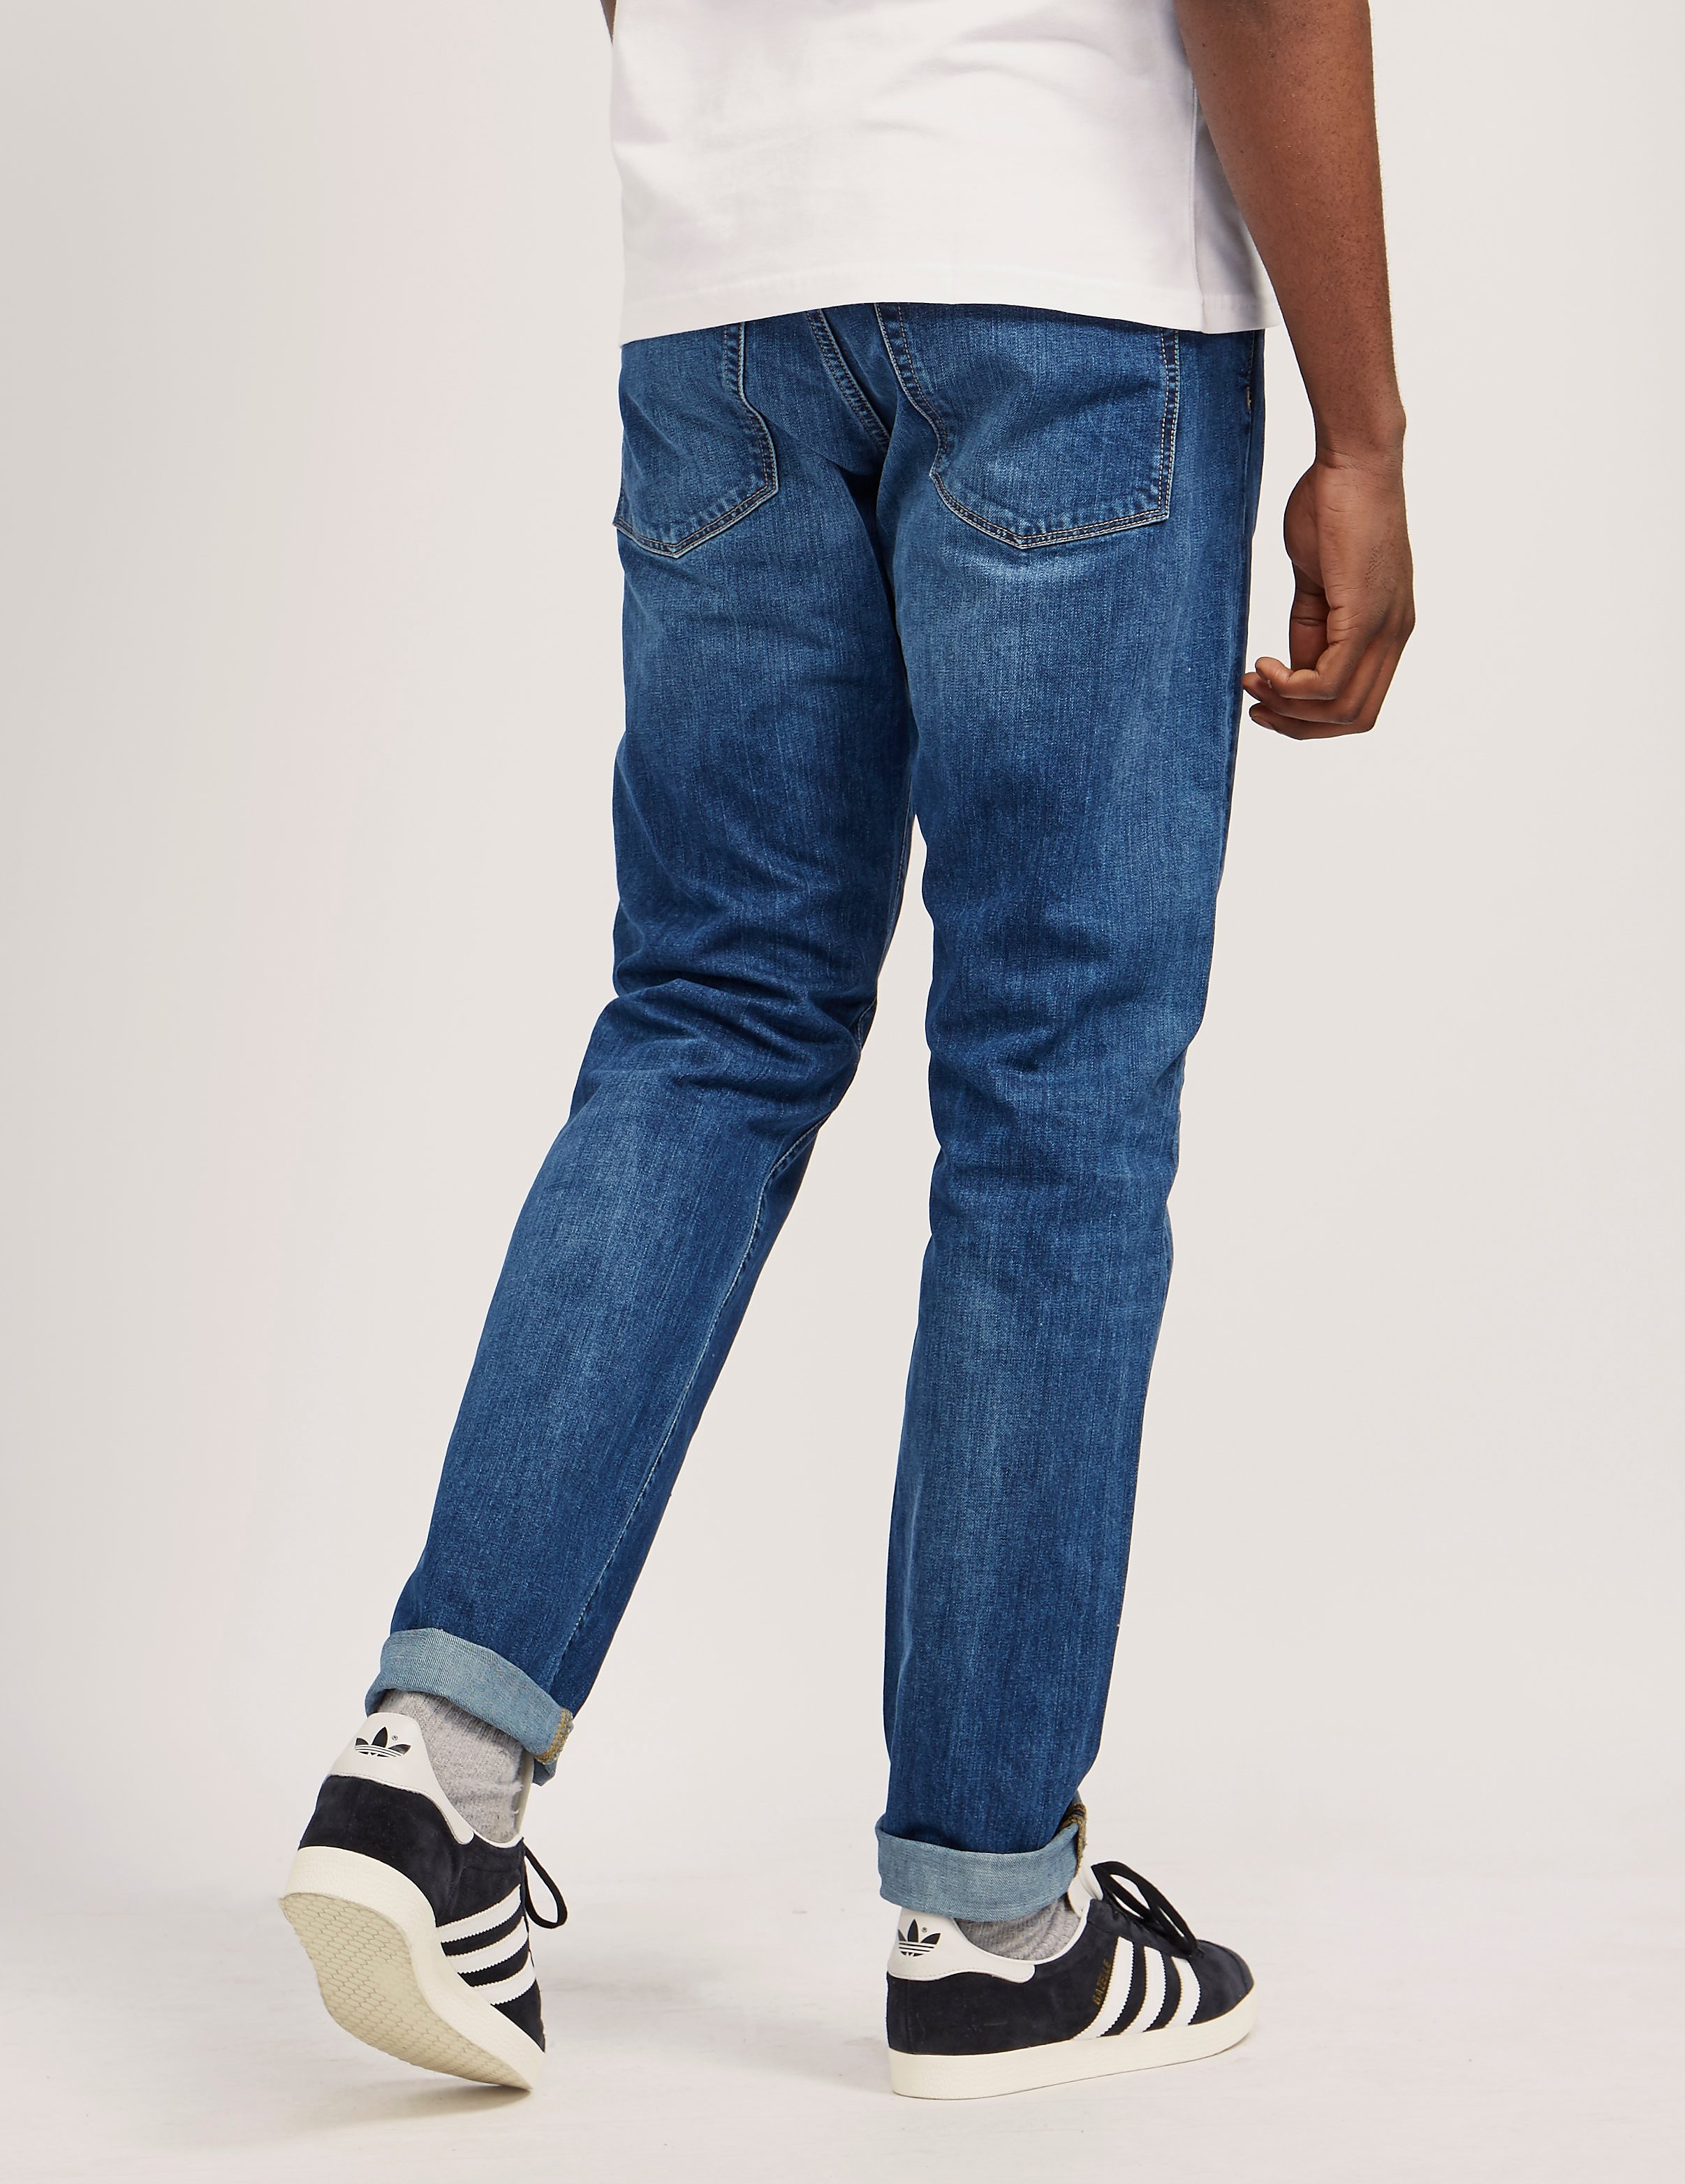 Carhartt WIP Vicious Regular Taper Jean